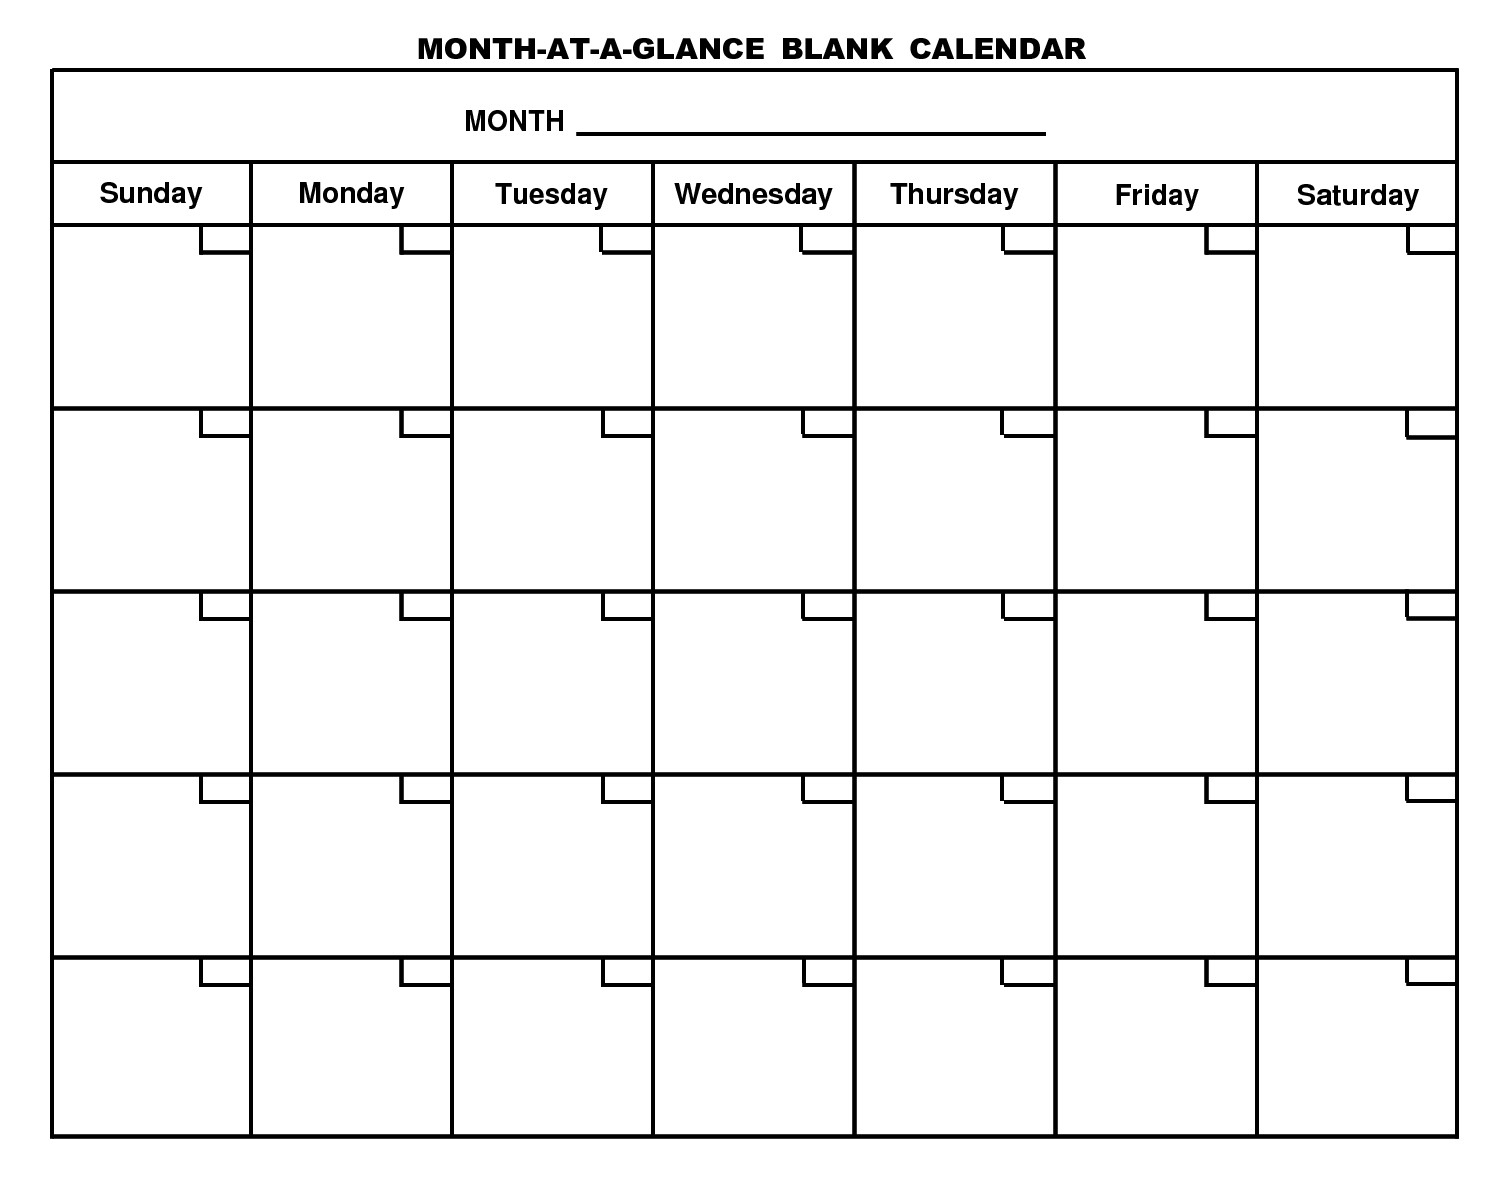 Blank Printable Calendar Template - Free Calendar Collection pertaining to Blank Printable Calendar By Month